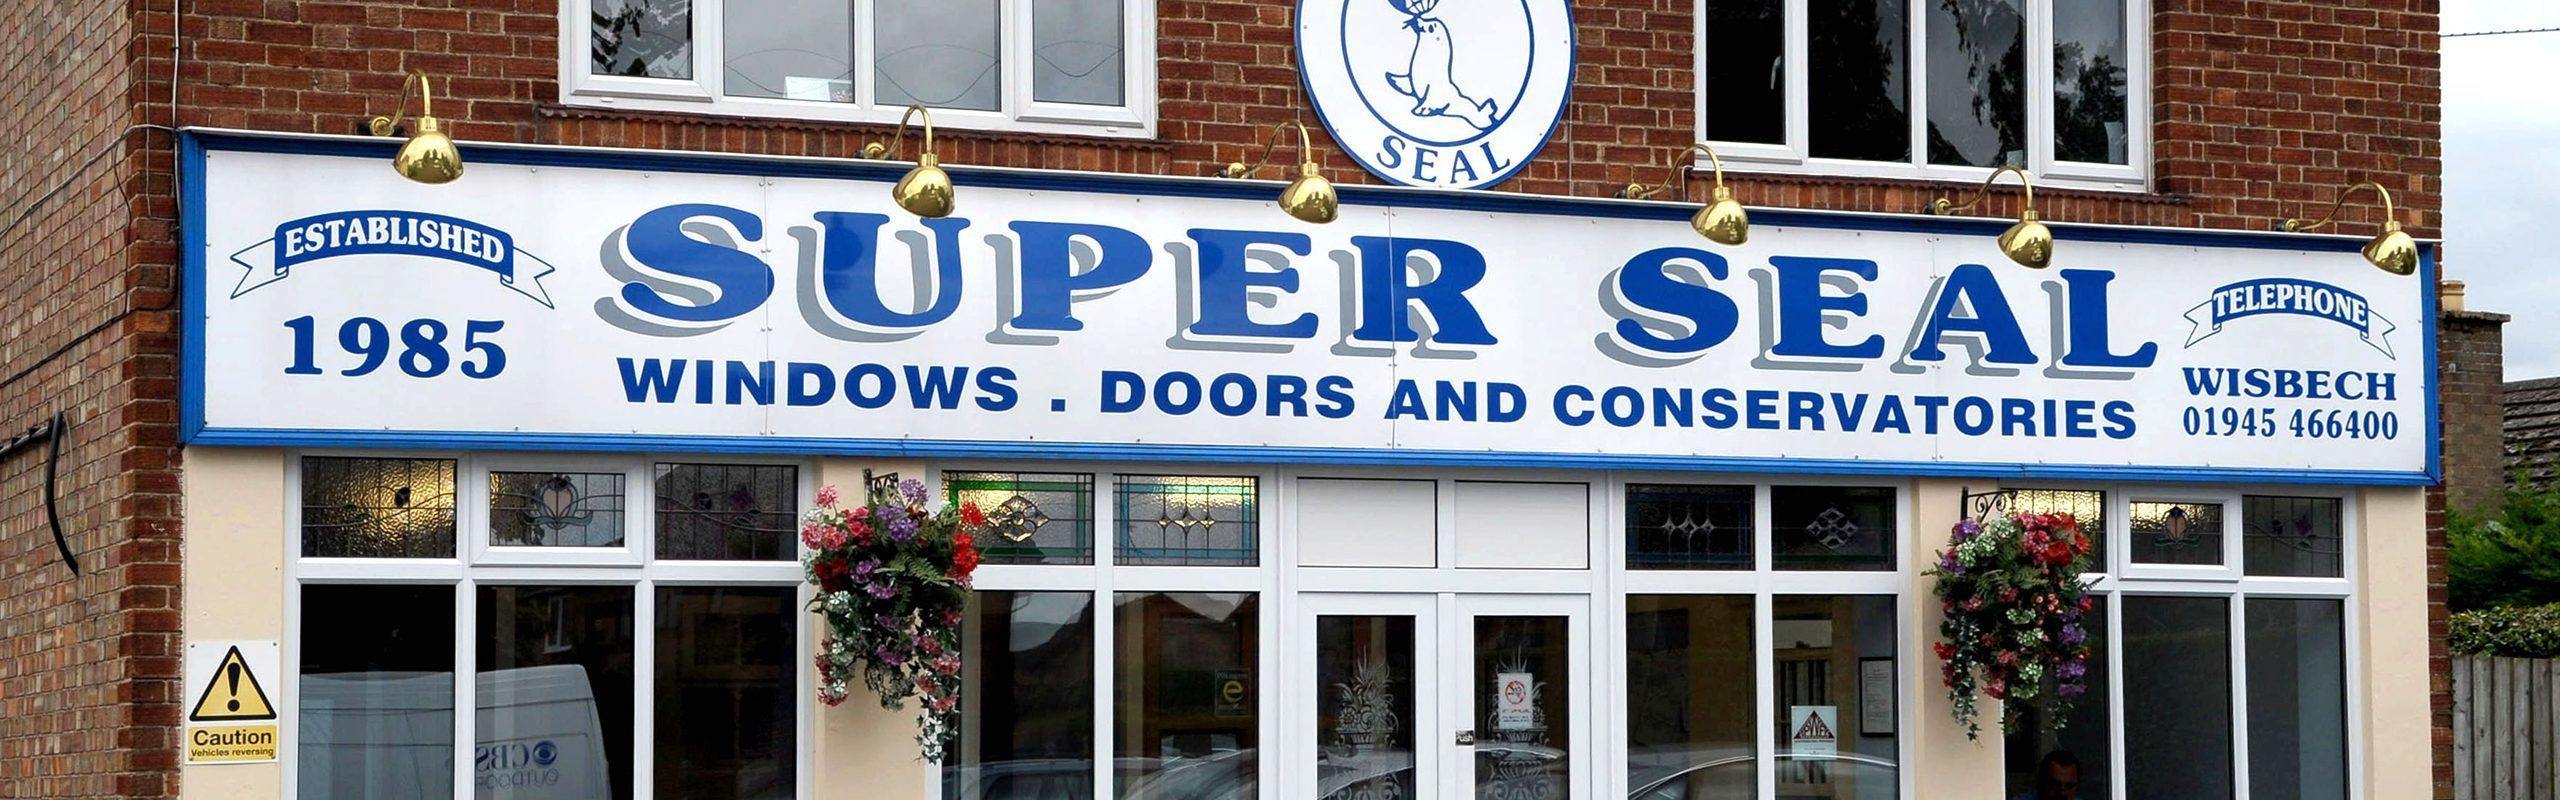 Super Seal showrooms Wisbech Cambridgeshire